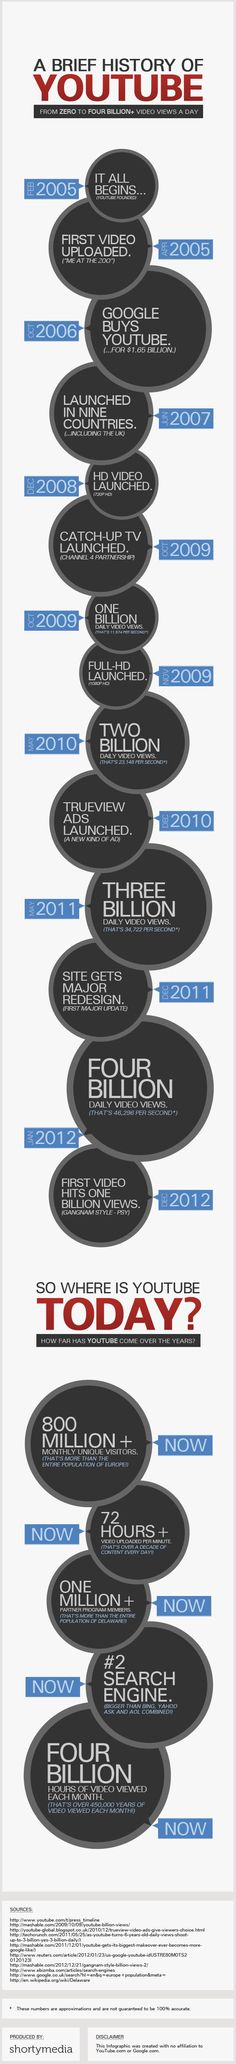 The Facts and Figures on YouTube in 2013 – Infographic